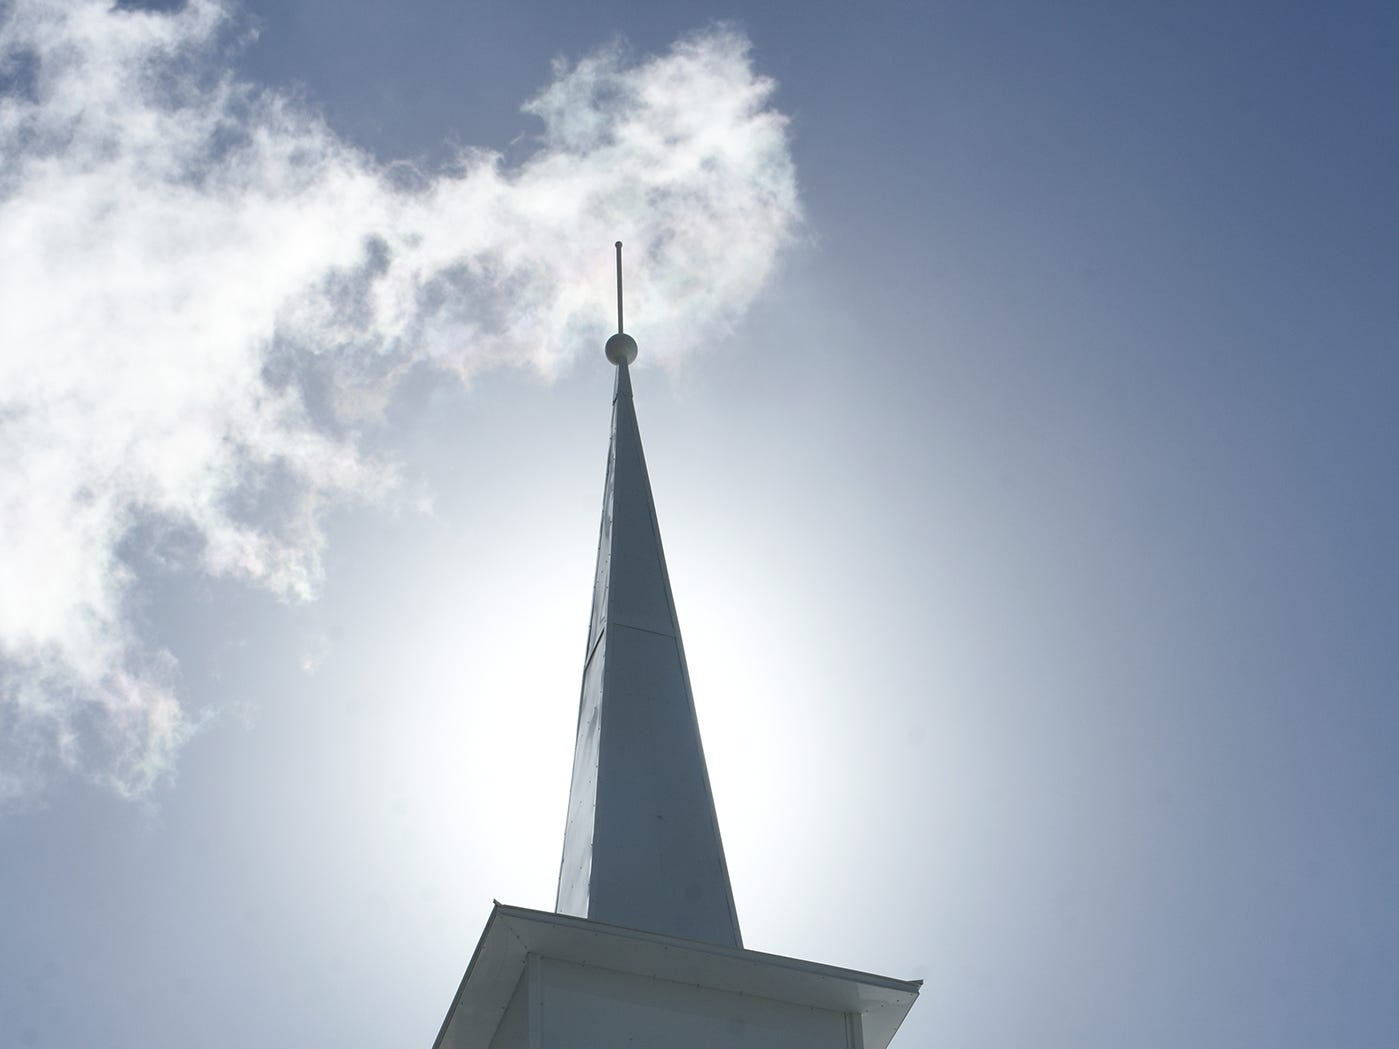 The newly dedicated steeple cost $30,000, paid for through donations from the congregation. United Church of Marco Island held a ceremony Sunday dedicating their newly erected steeple, which was damaged during Hurricane Irma.